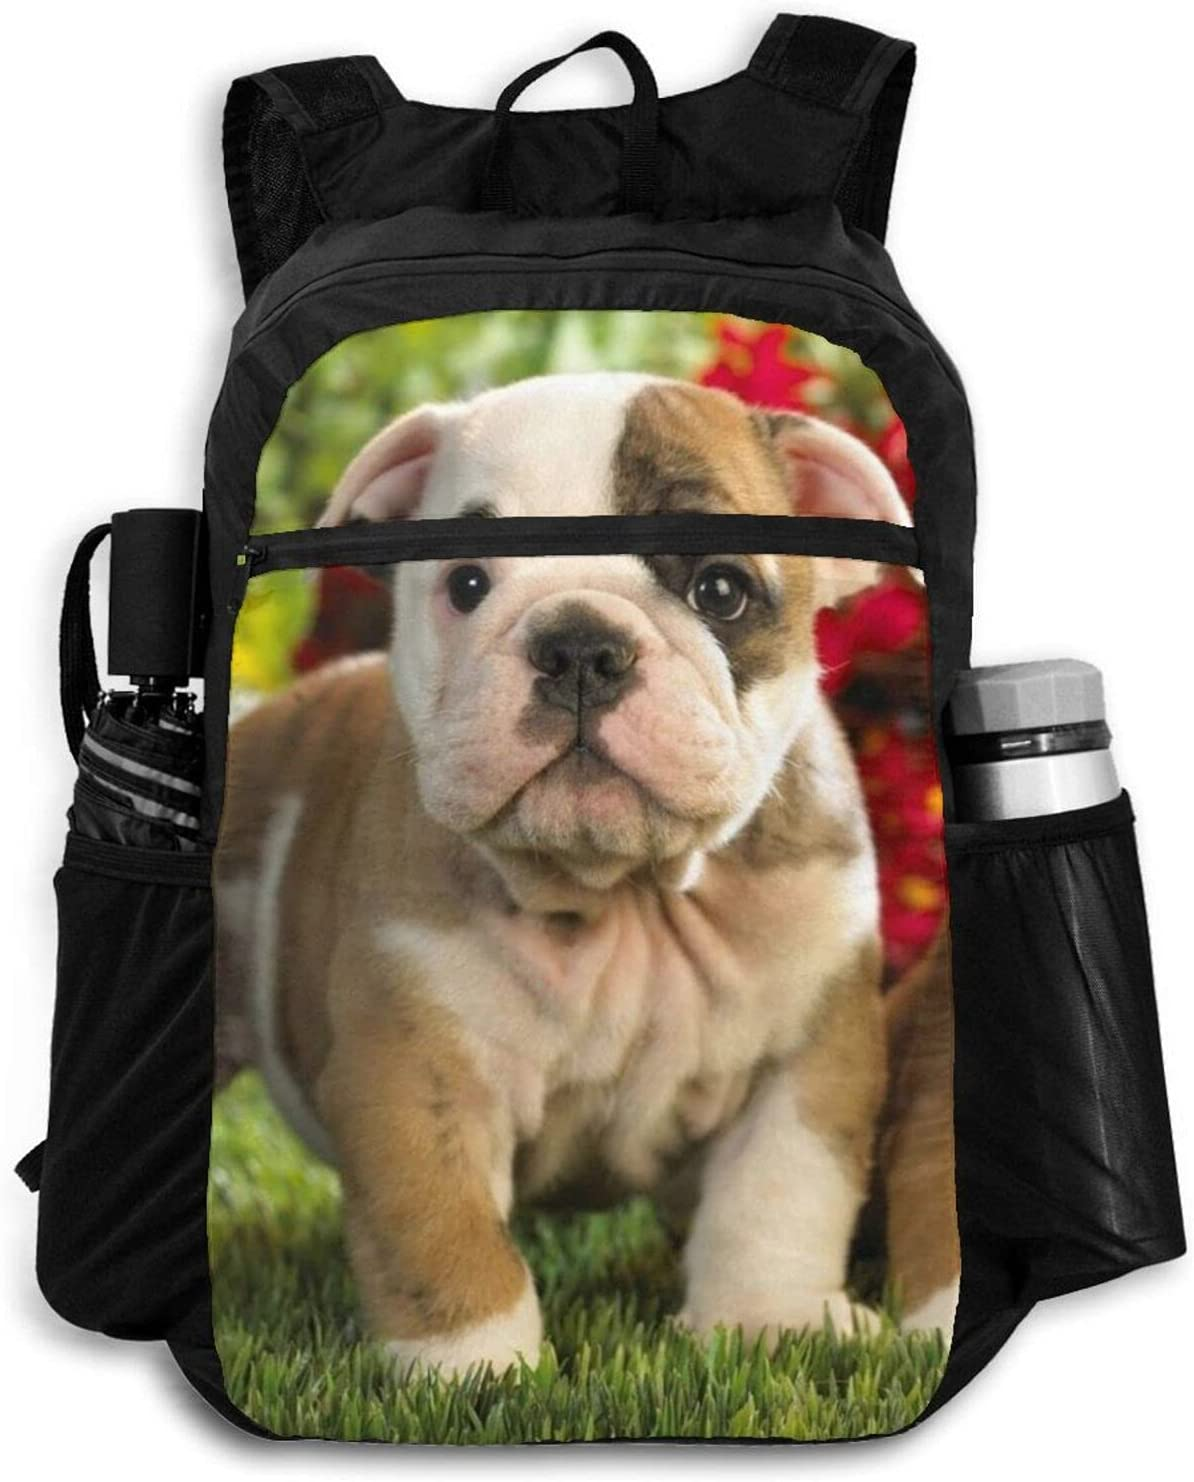 Puppies Rare Dog Lightweight Packable Backpack Recommendation Outdoor Women Men For